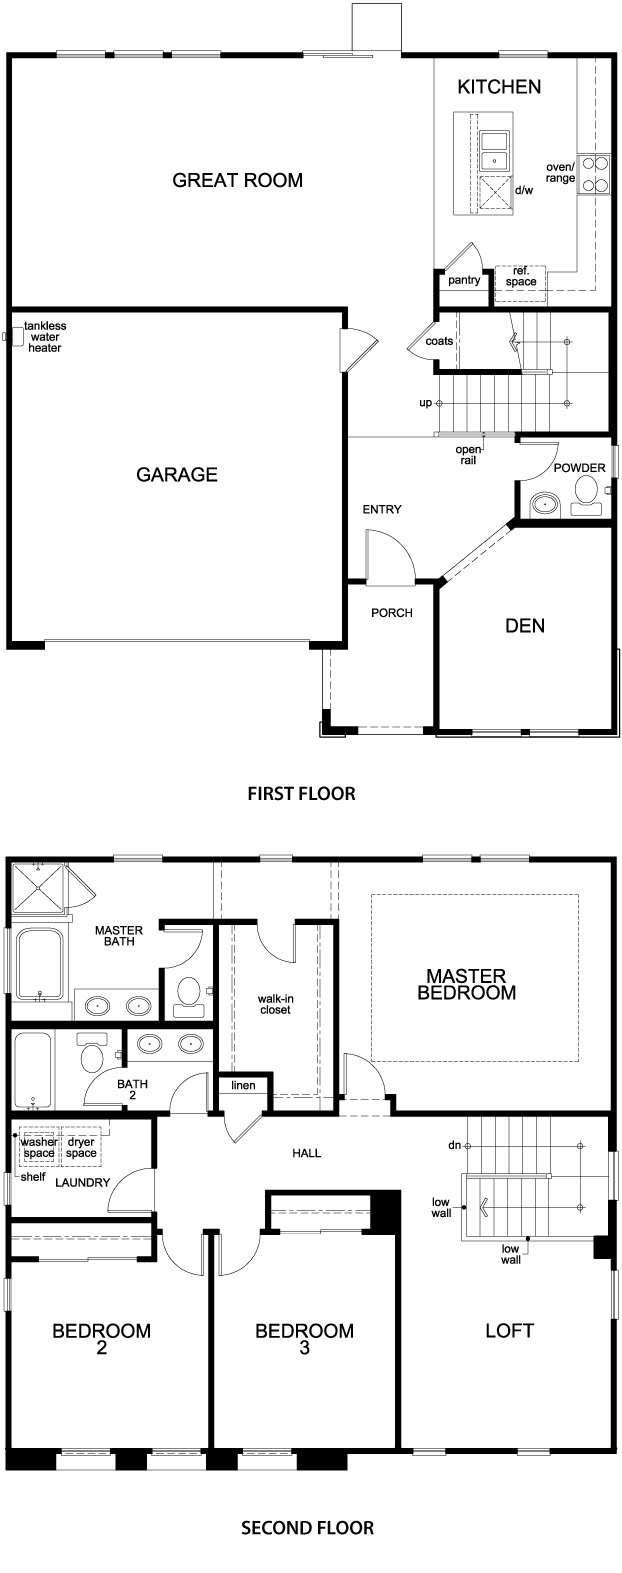 100 Foremost Homes Floor Plans Foremost Locations